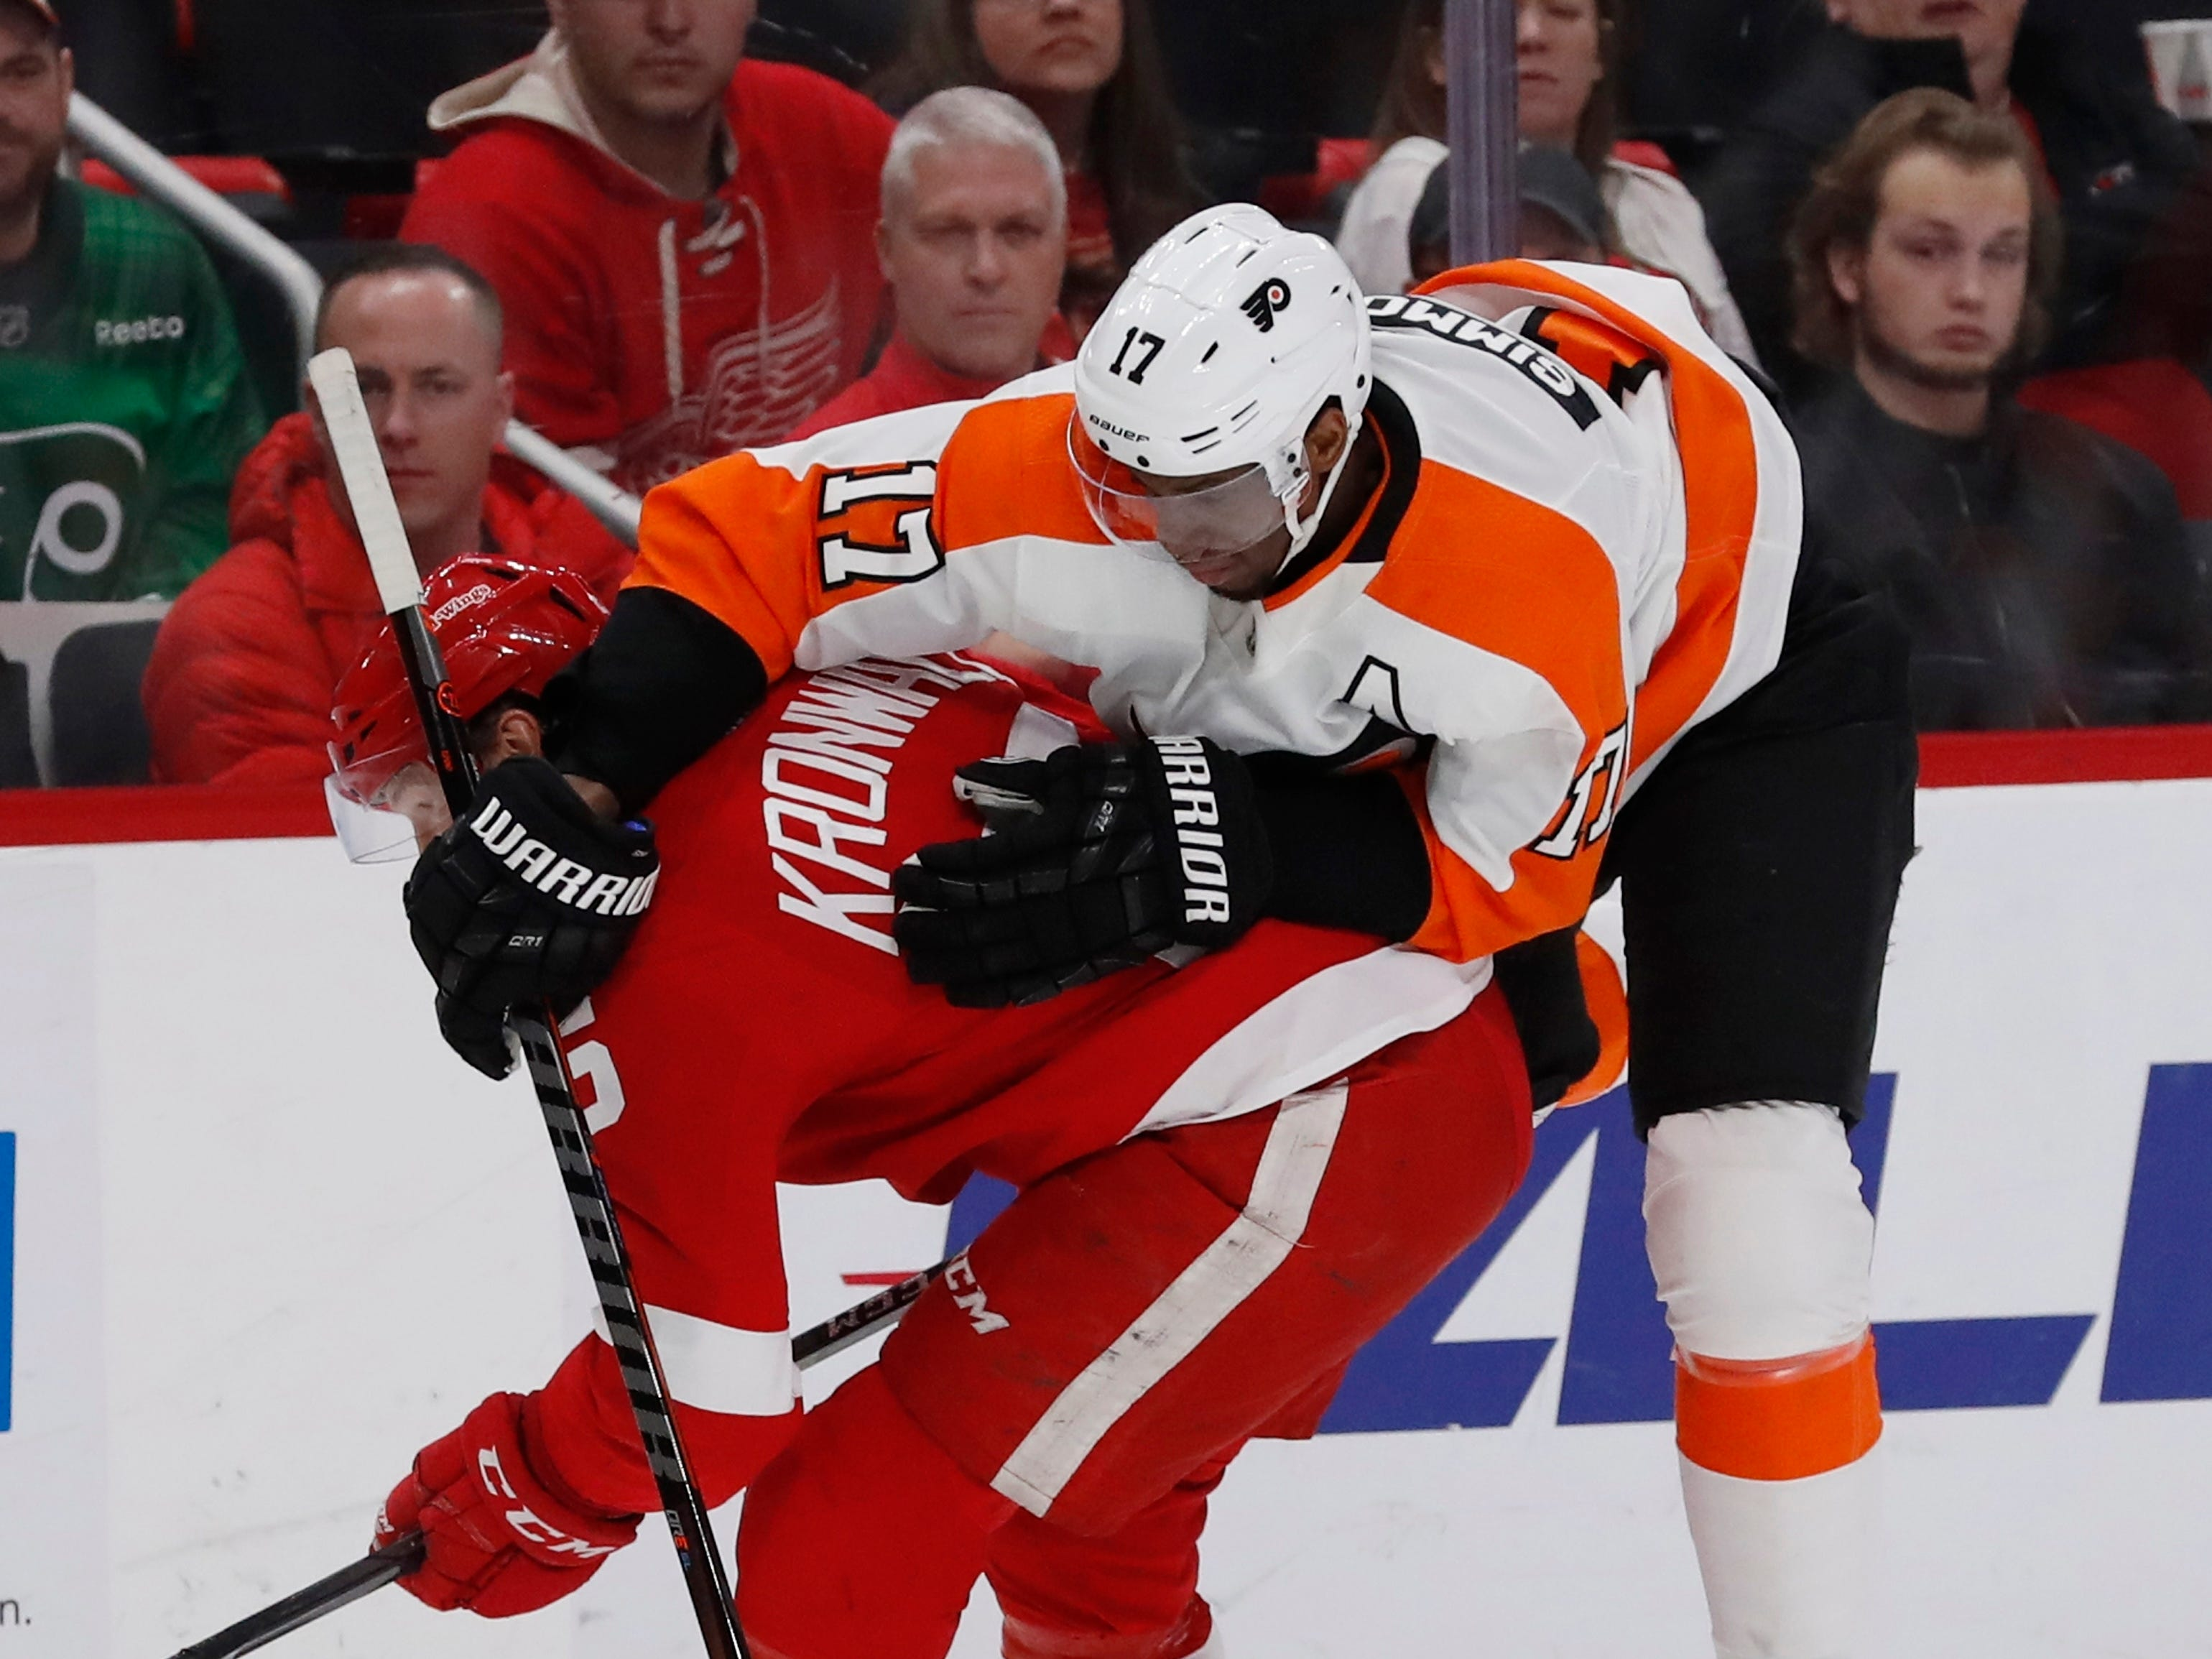 Philadelphia Flyers right wing Wayne Simmonds (17) runs into Detroit Red Wings defenseman Niklas Kronwall (55) during the first period.